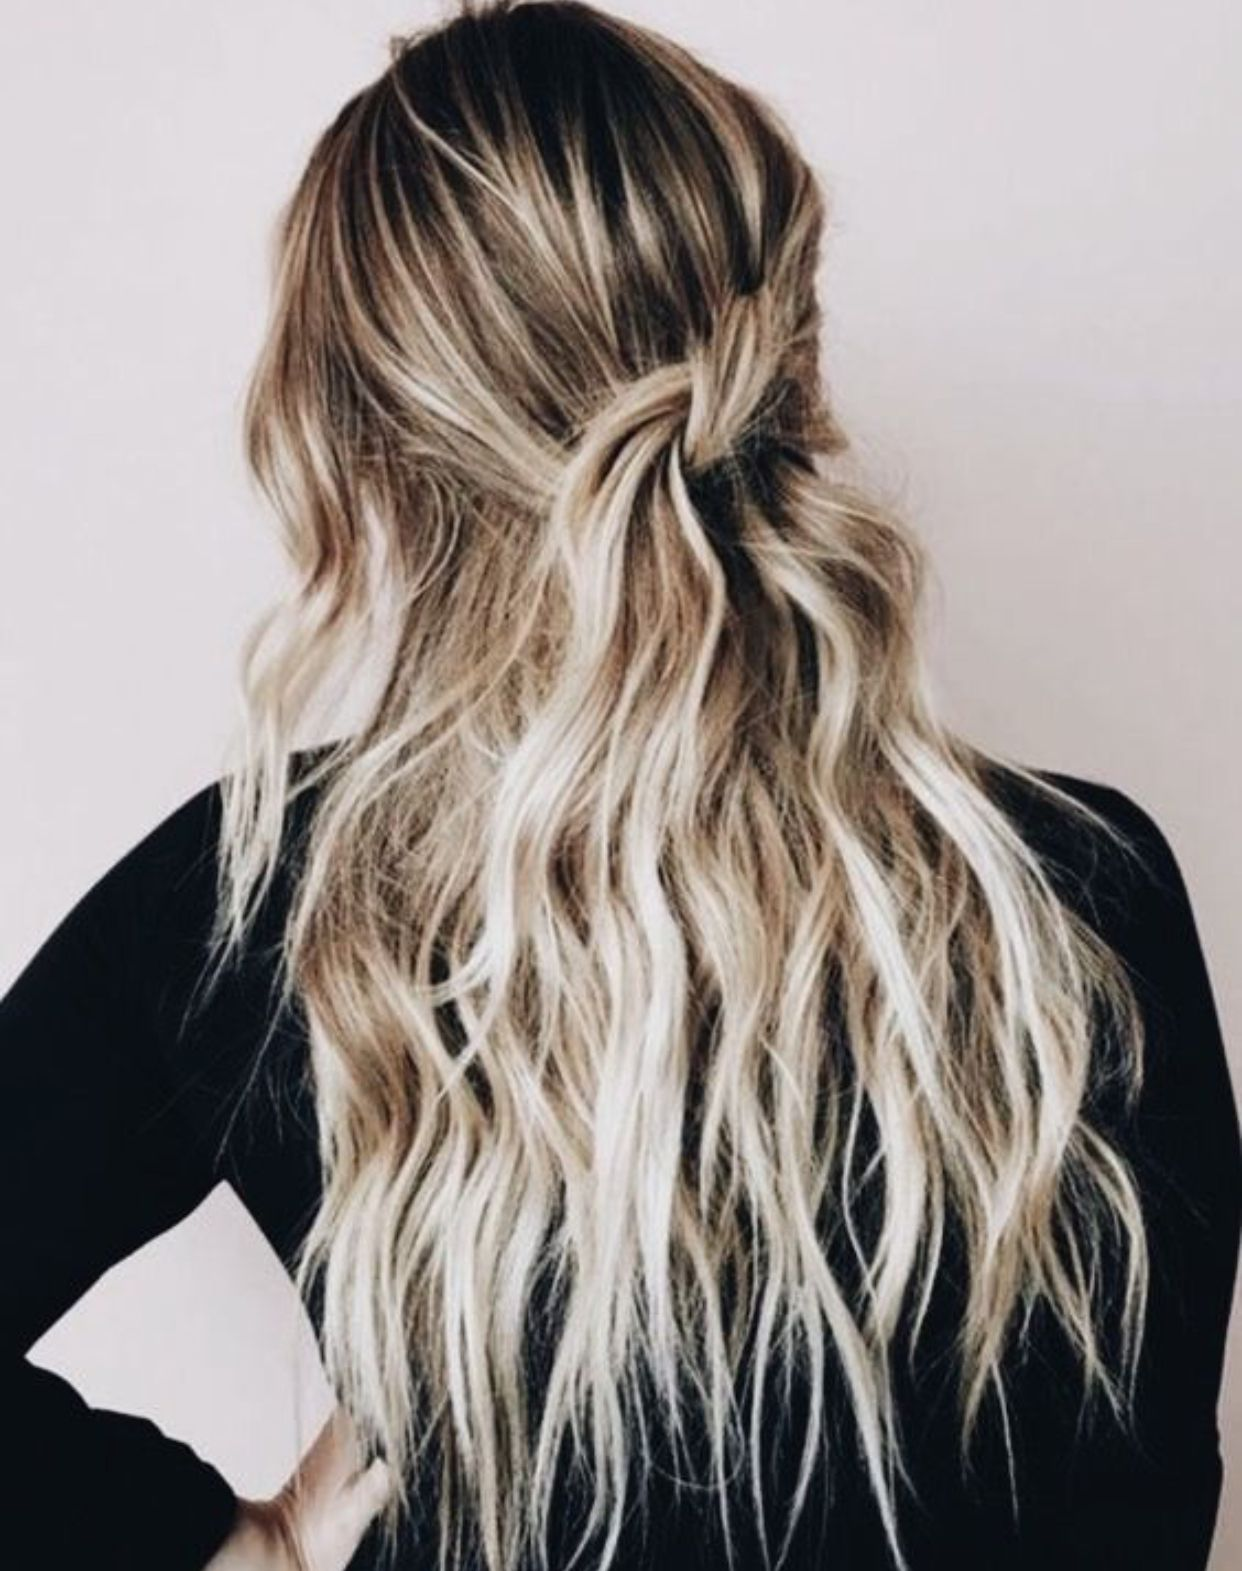 Pin by abigail rose on tangles pinterest hair style hair makeup